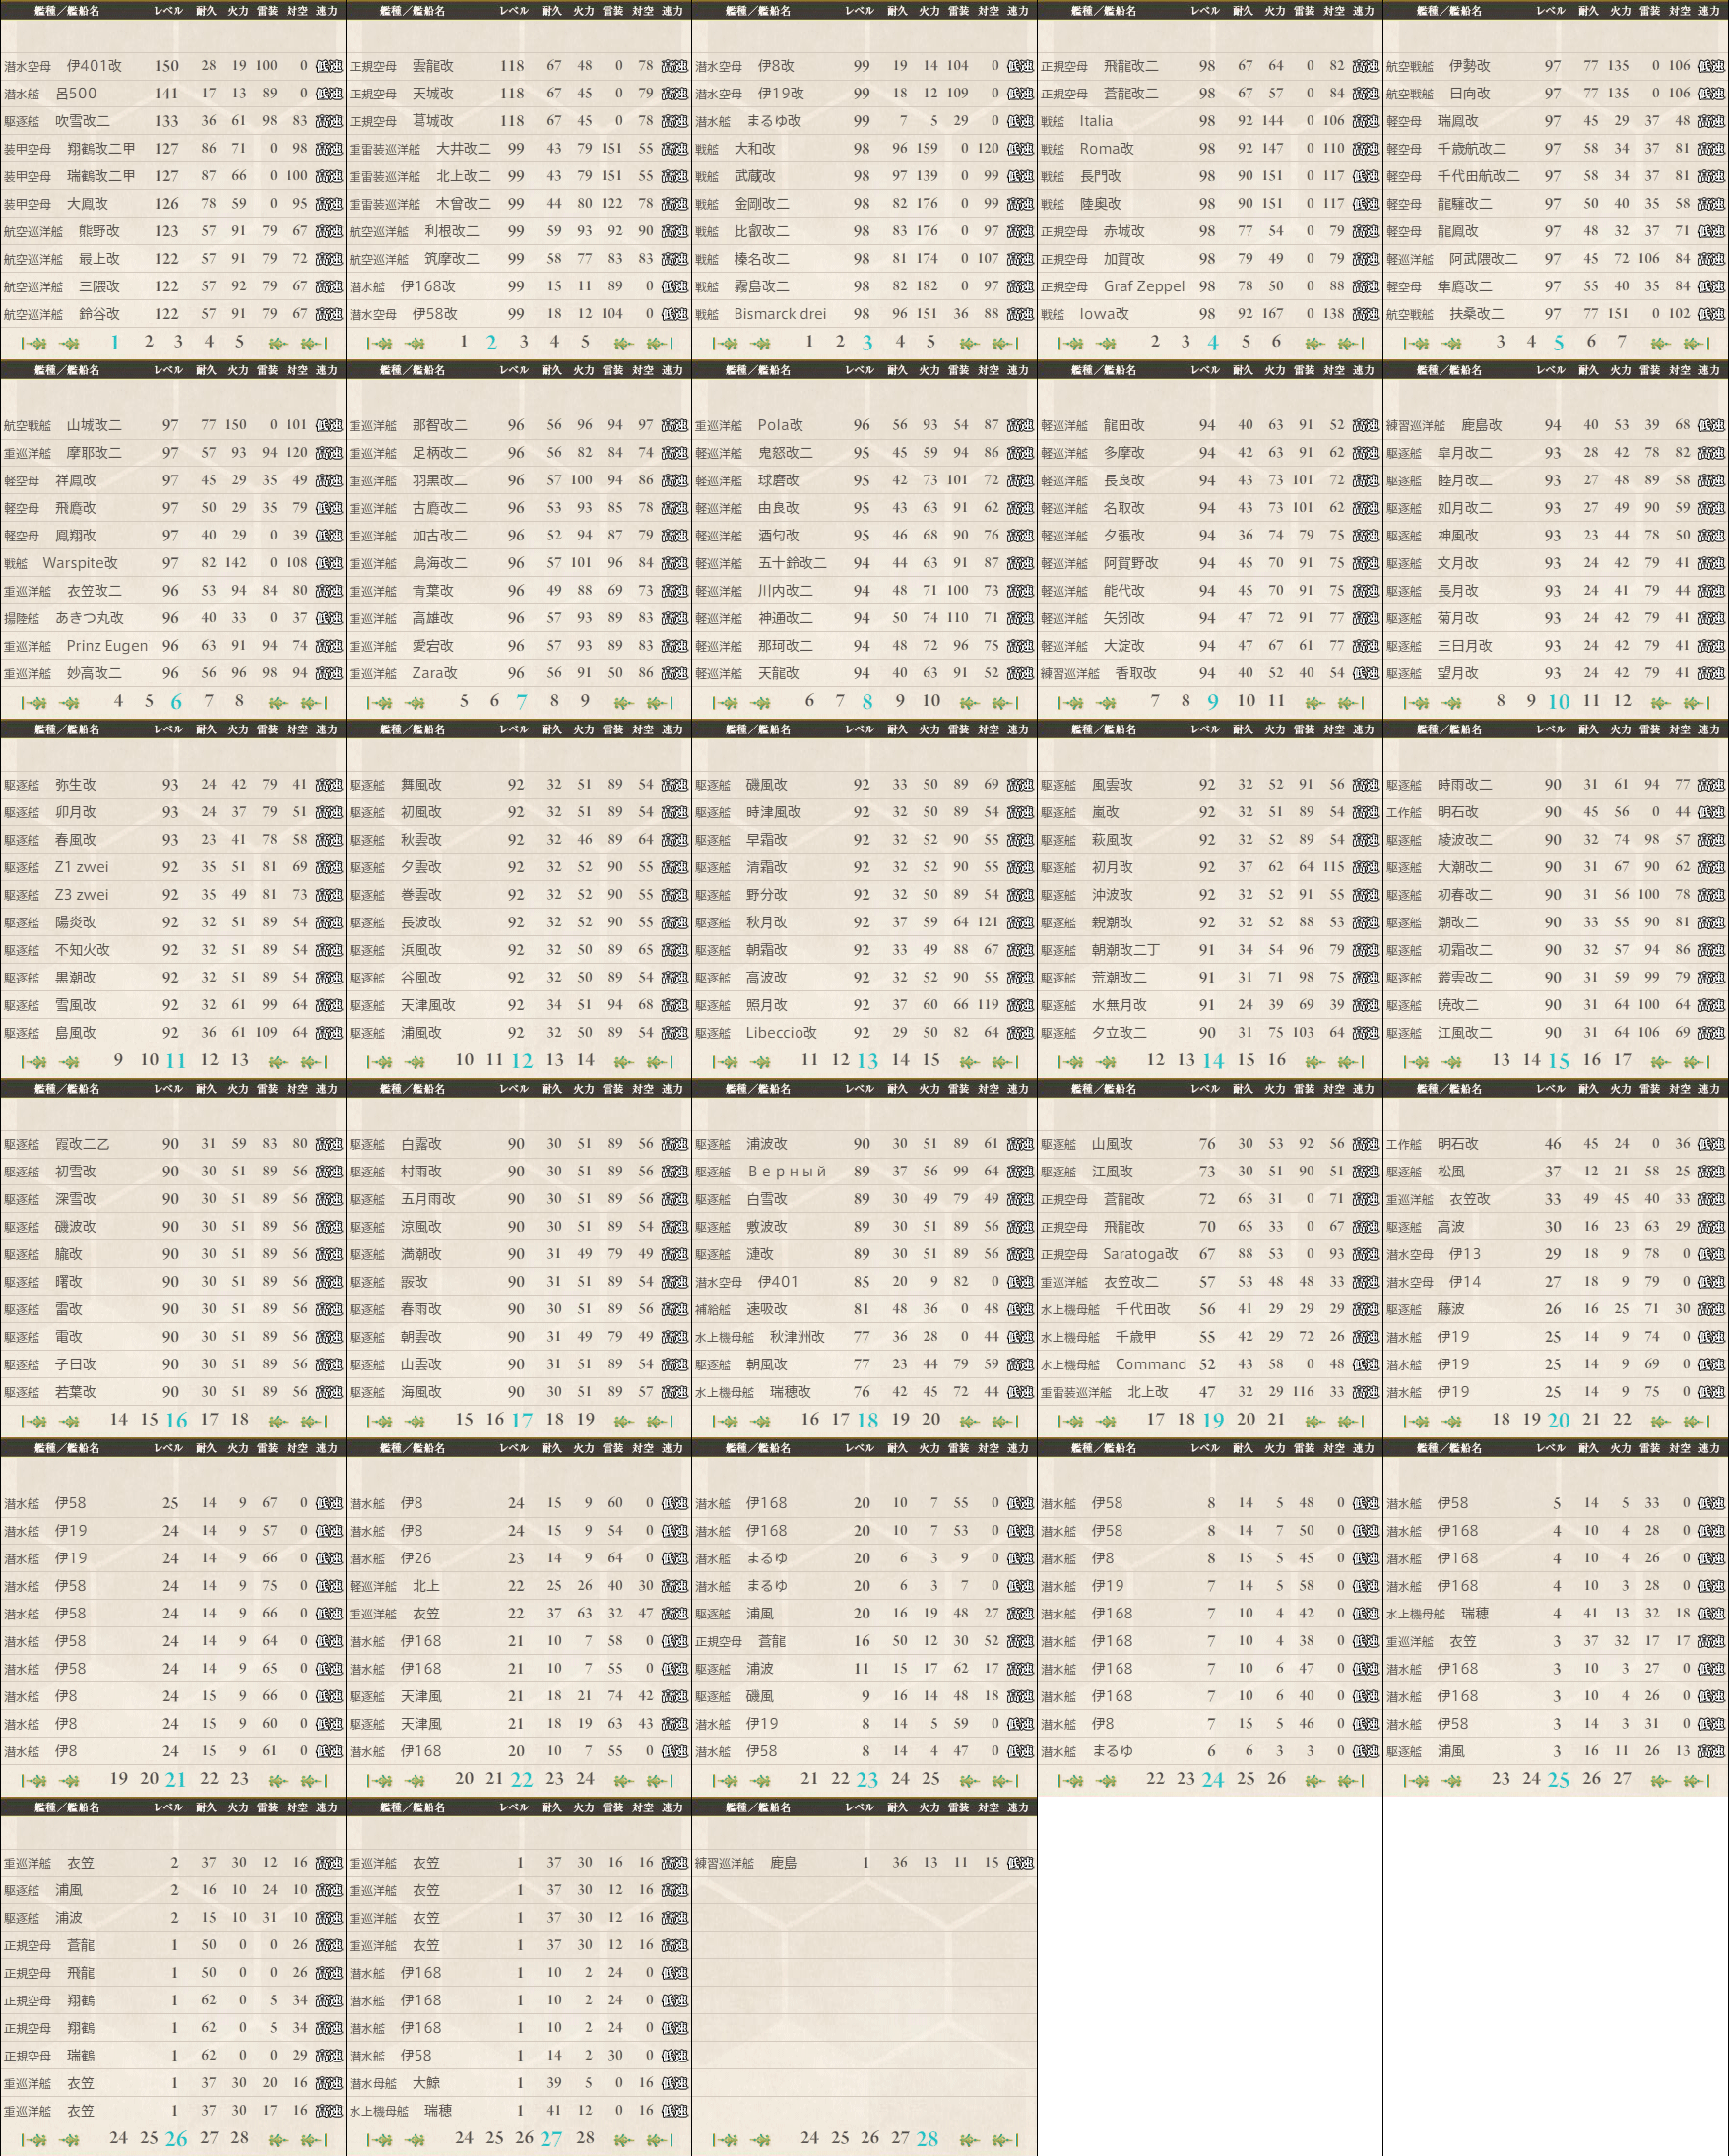 data.kancolle.levelsort.20170305.png